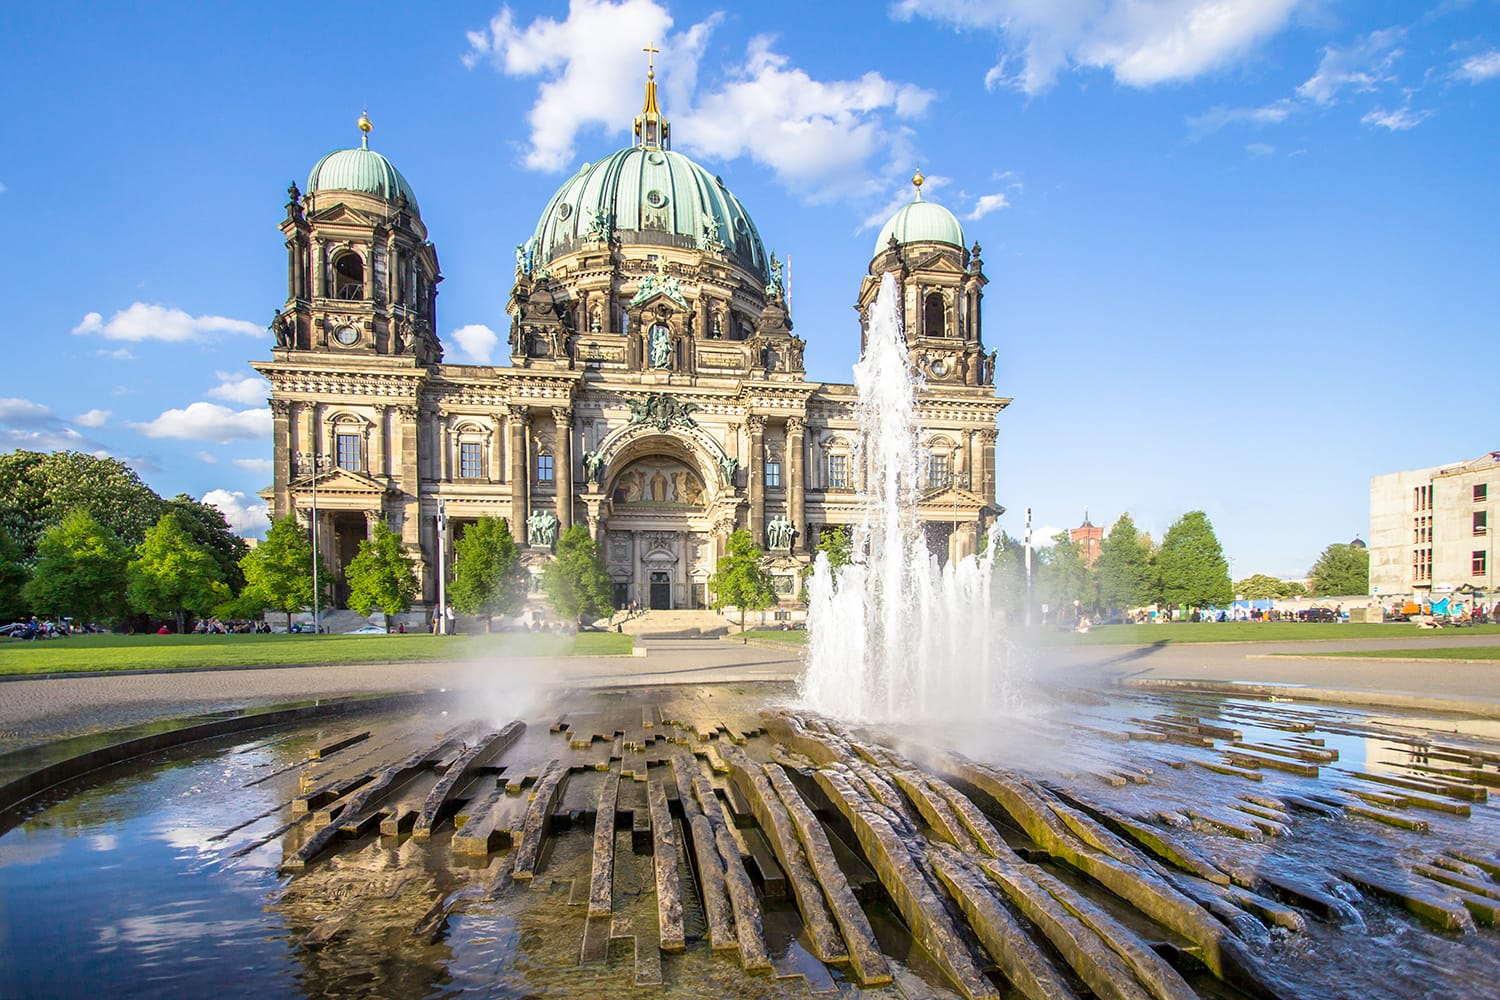 View of the Berliner Dom (Berlin Cathedral) with a fountain in the foreground in Berlin, Germany